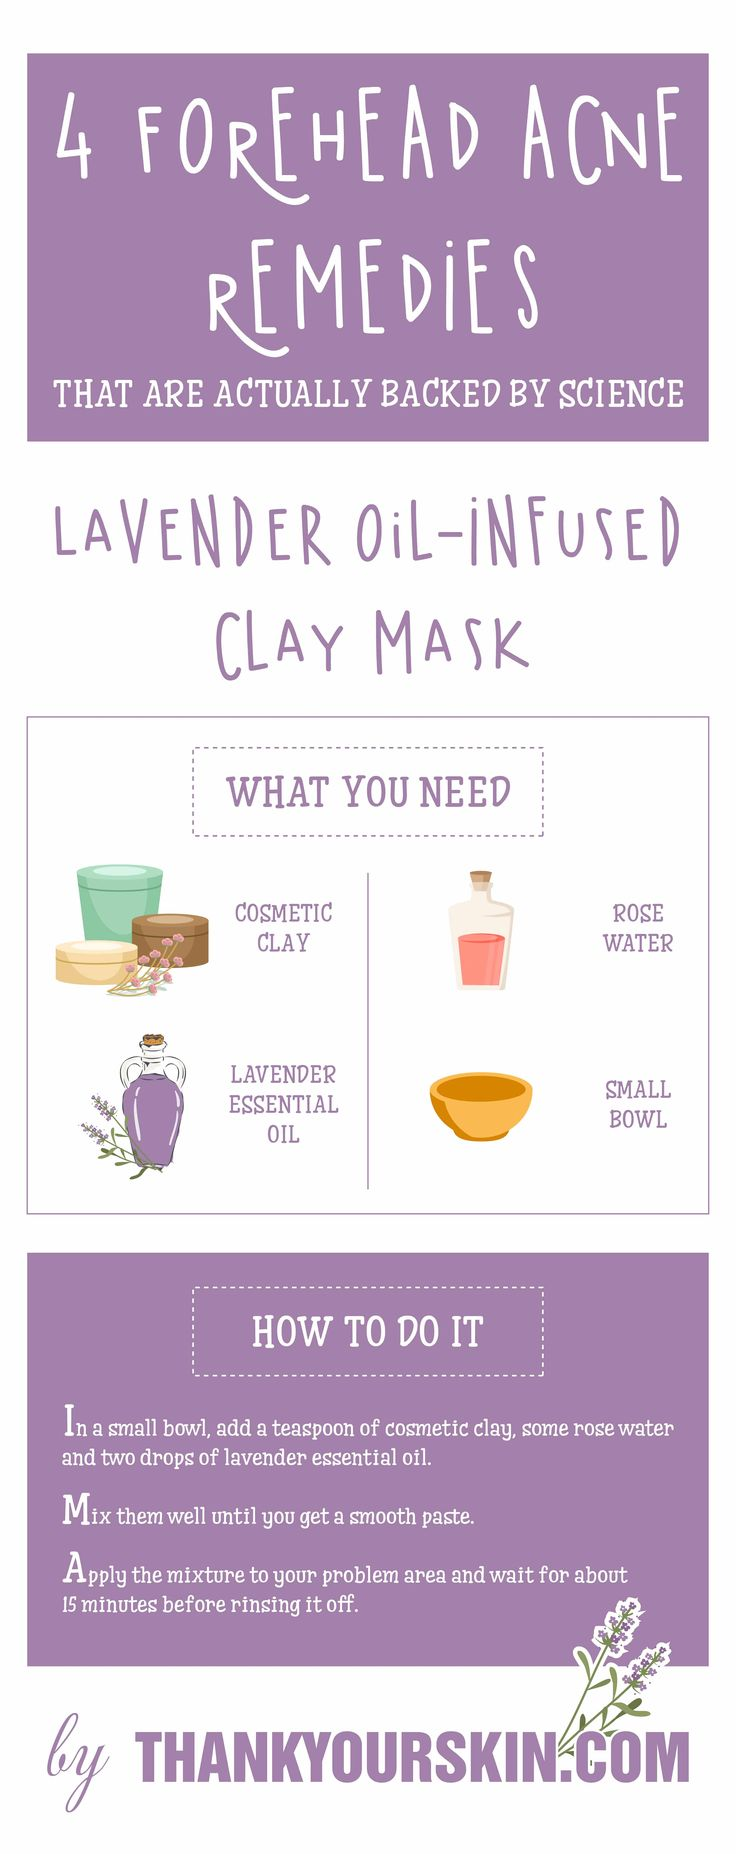 How to get rid of forehead acne fast and overnight with natural homeade remedies what work. Easy DIY recipes. #GetRidOfForeheadAcne #AcneRemedies #ThankYourSkin